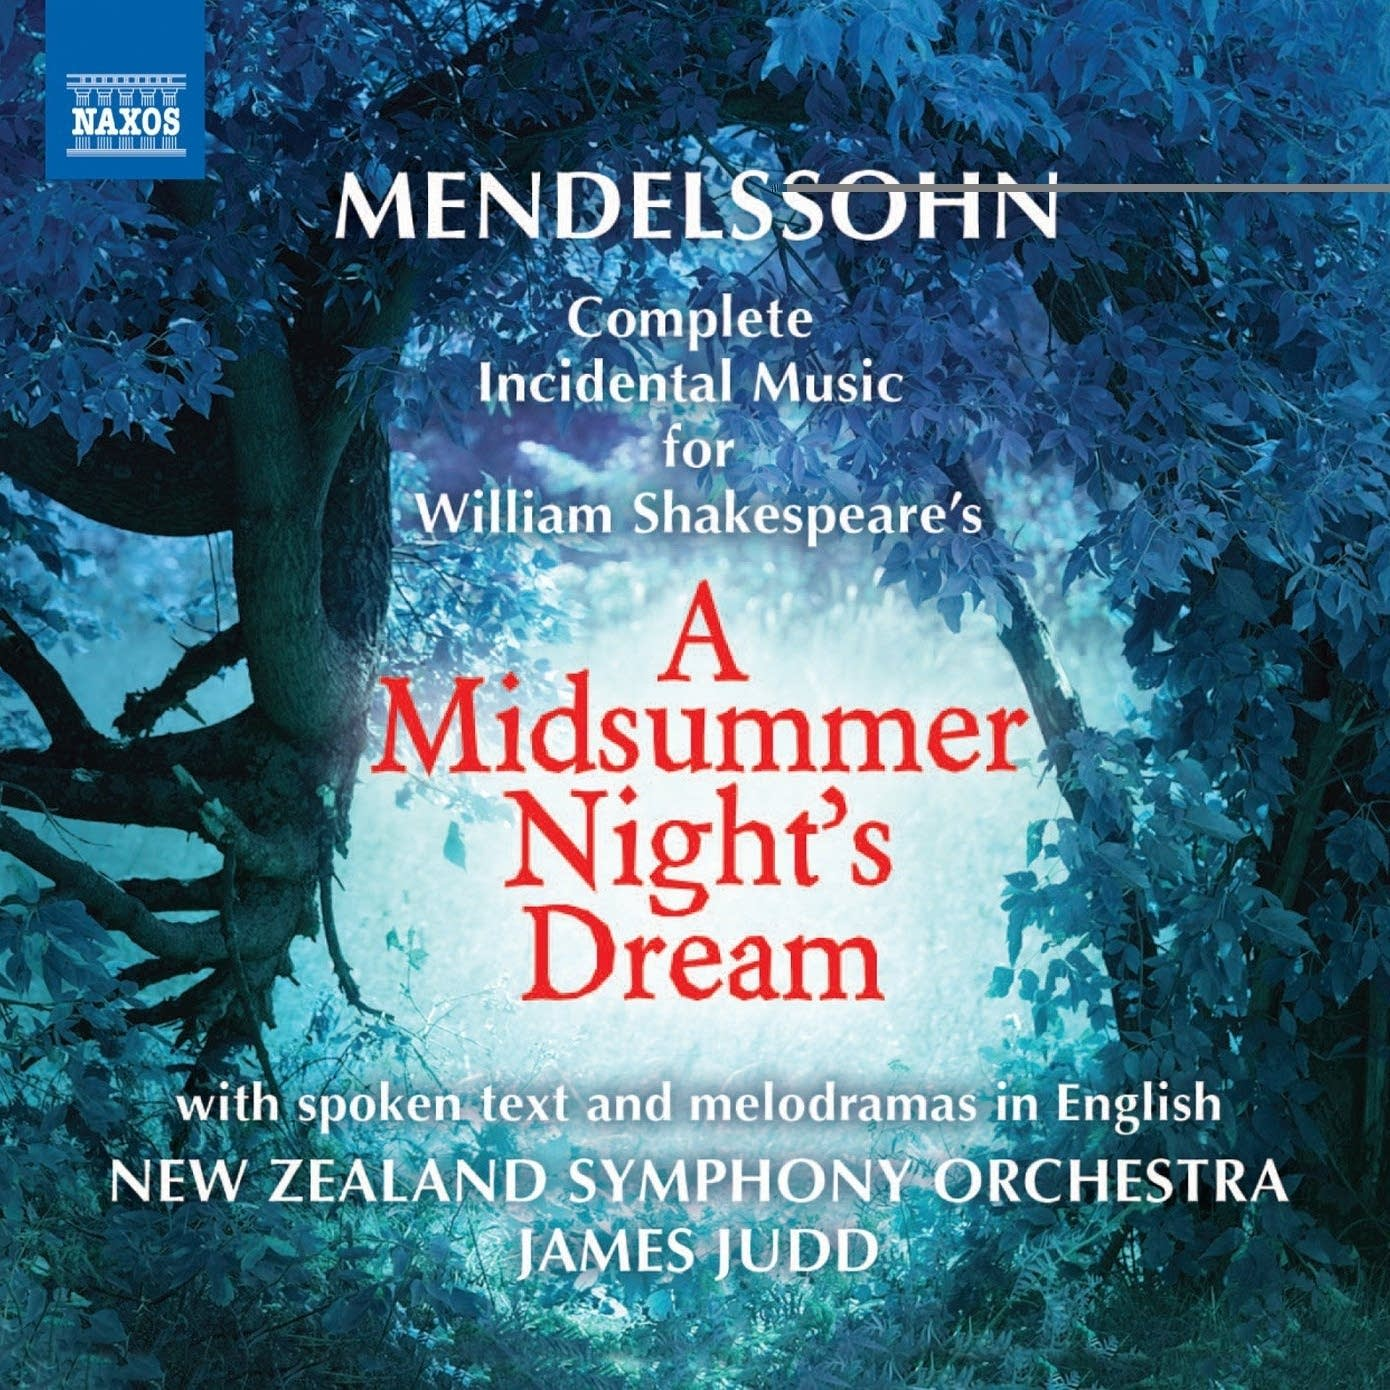 daily felix mendelssohn a midsummer night s dream daily felix mendelssohn a midsummer night s dream overture your classical